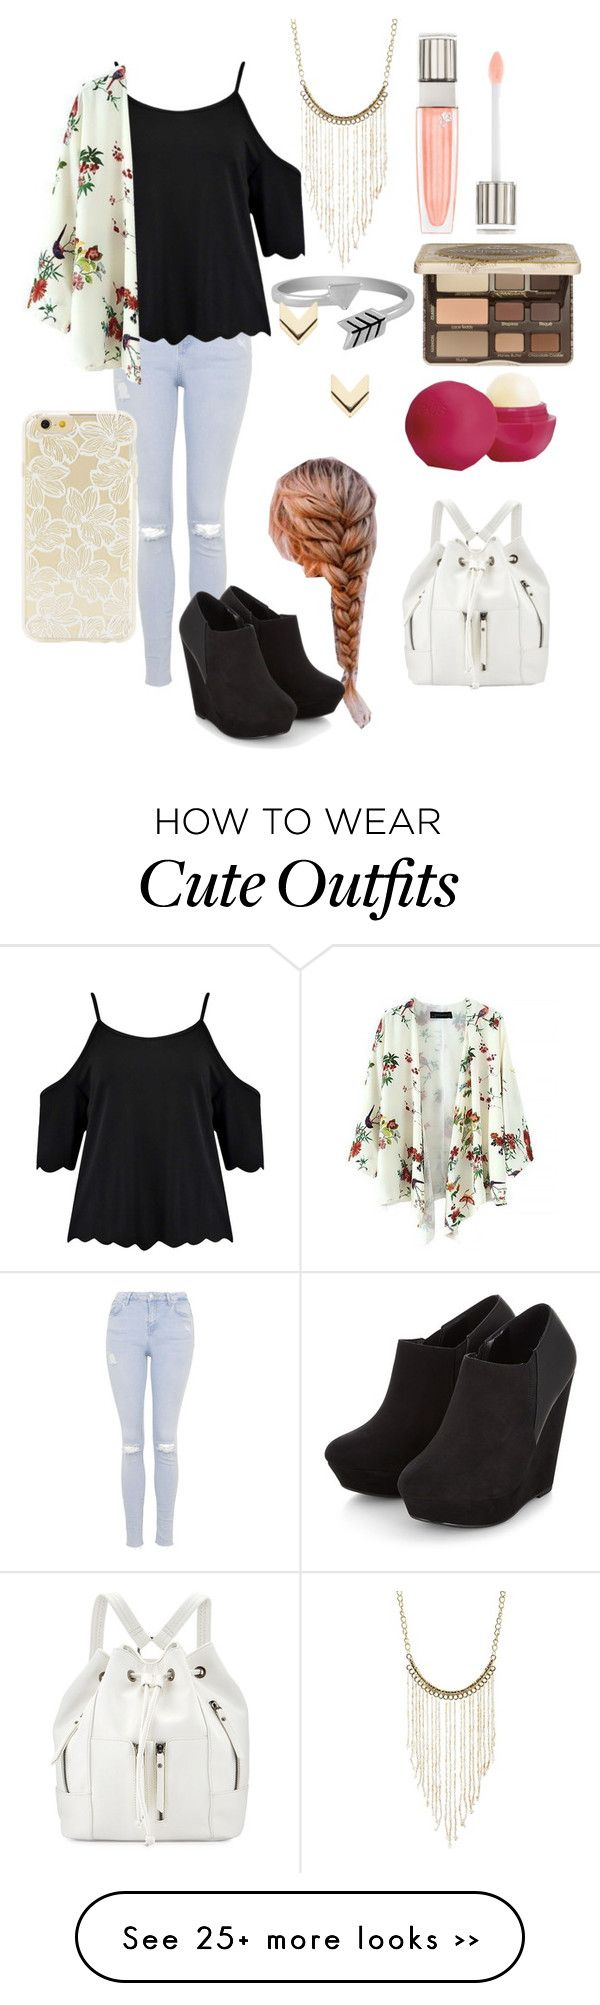 BTS outfit ideas day 24 by lilacbee on Polyvore featuring Topshop, Boohoo, Lancôme, Too Faced Cosmetics, Eos, Charlotte Russe, Jewel Exclusive, Neiman Marcus, Leslie Danzis and Forever 21